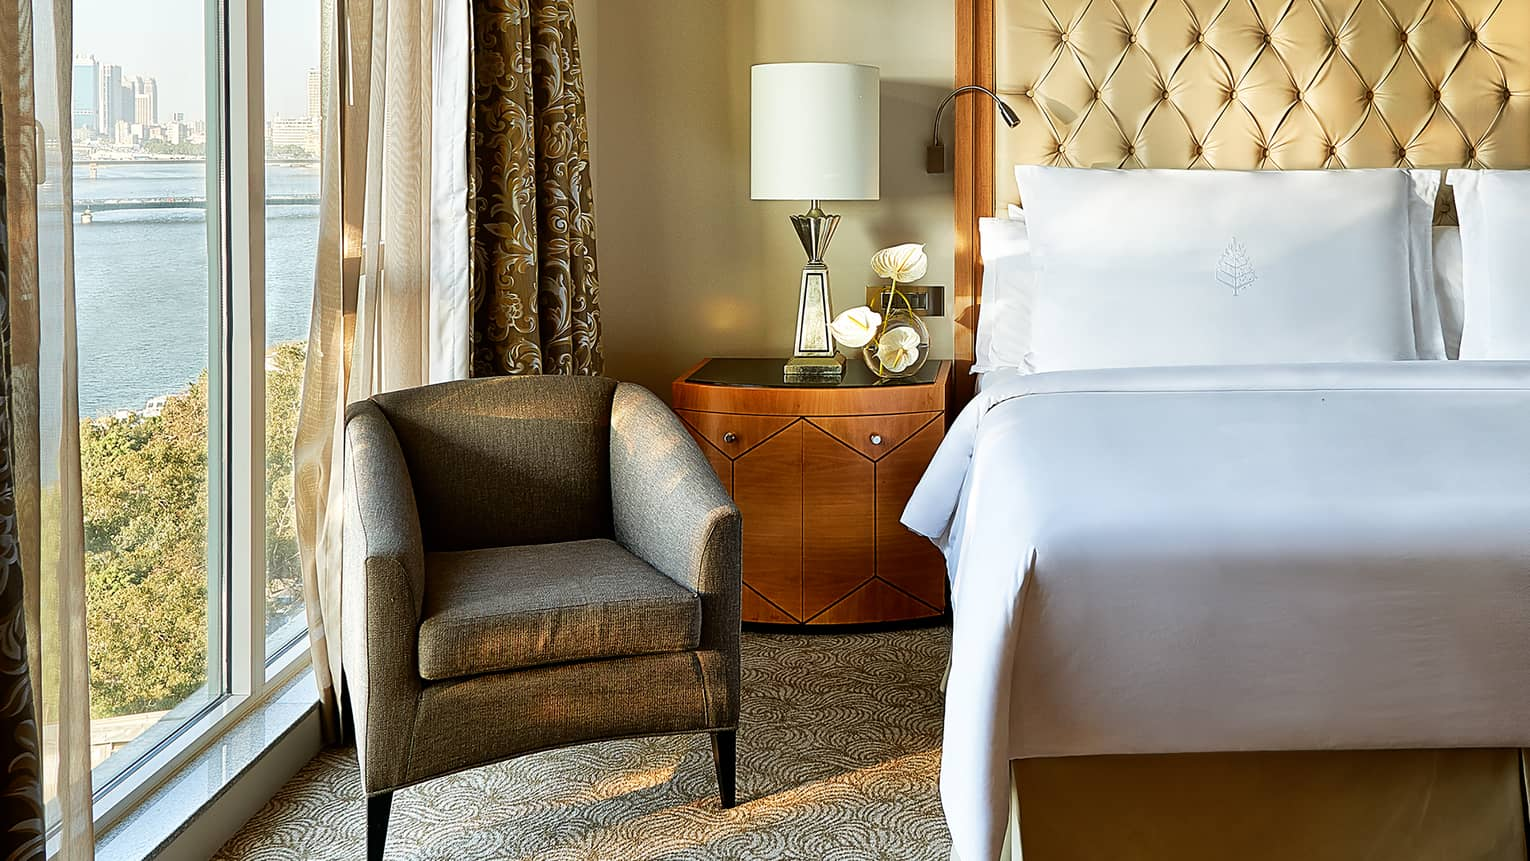 Royal Suite close-up of white pillows and tall leather headboard, wooden side table with lamp and white orchids